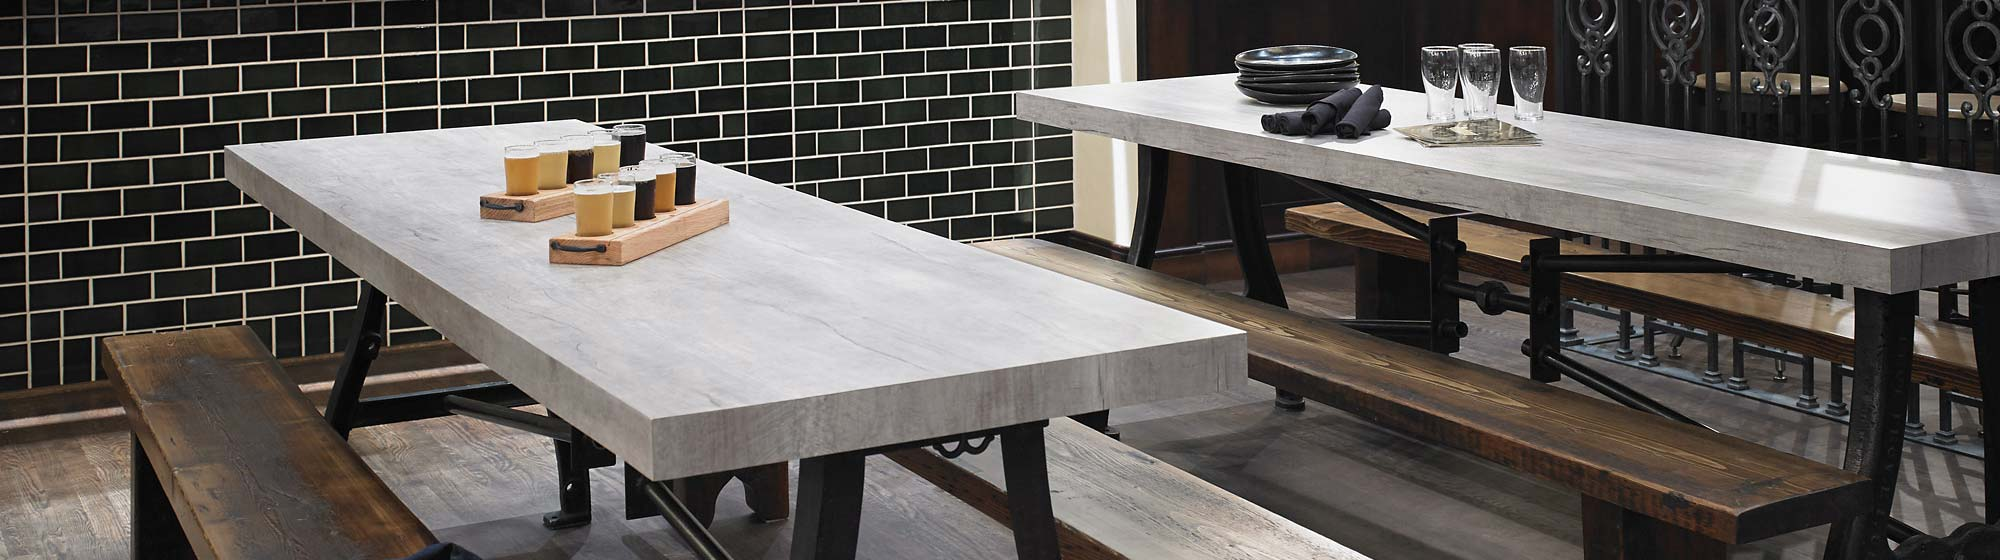 Formica Hpl Laminate Color Choices Only Table Tops